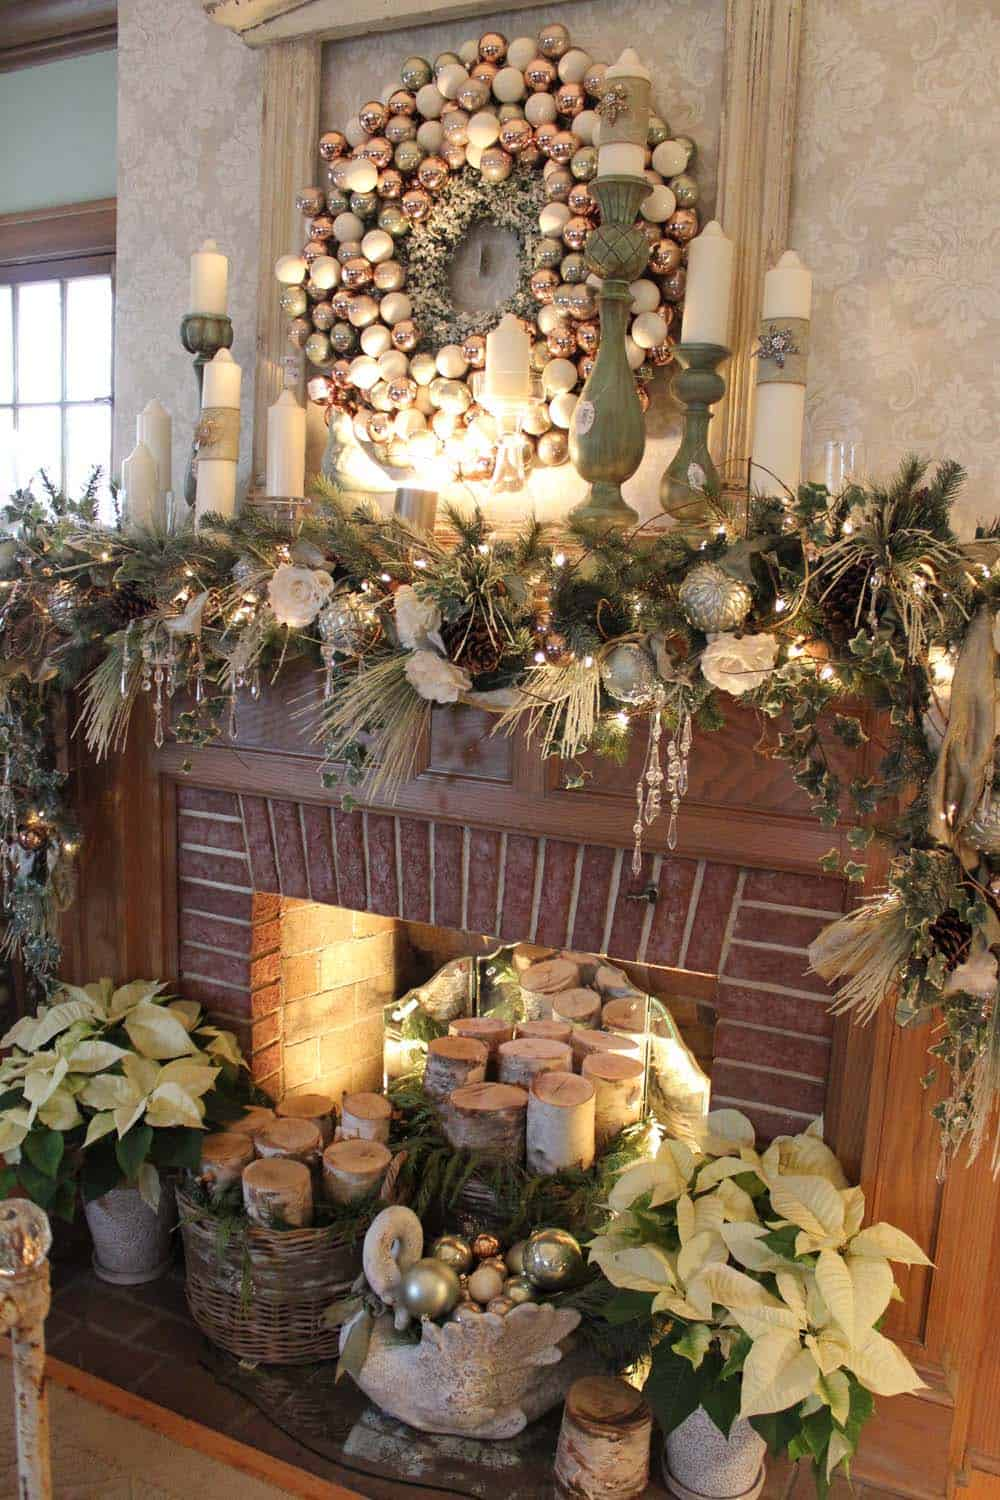 Christmas Mantel Decorating Ideas-57-1 Kindesign